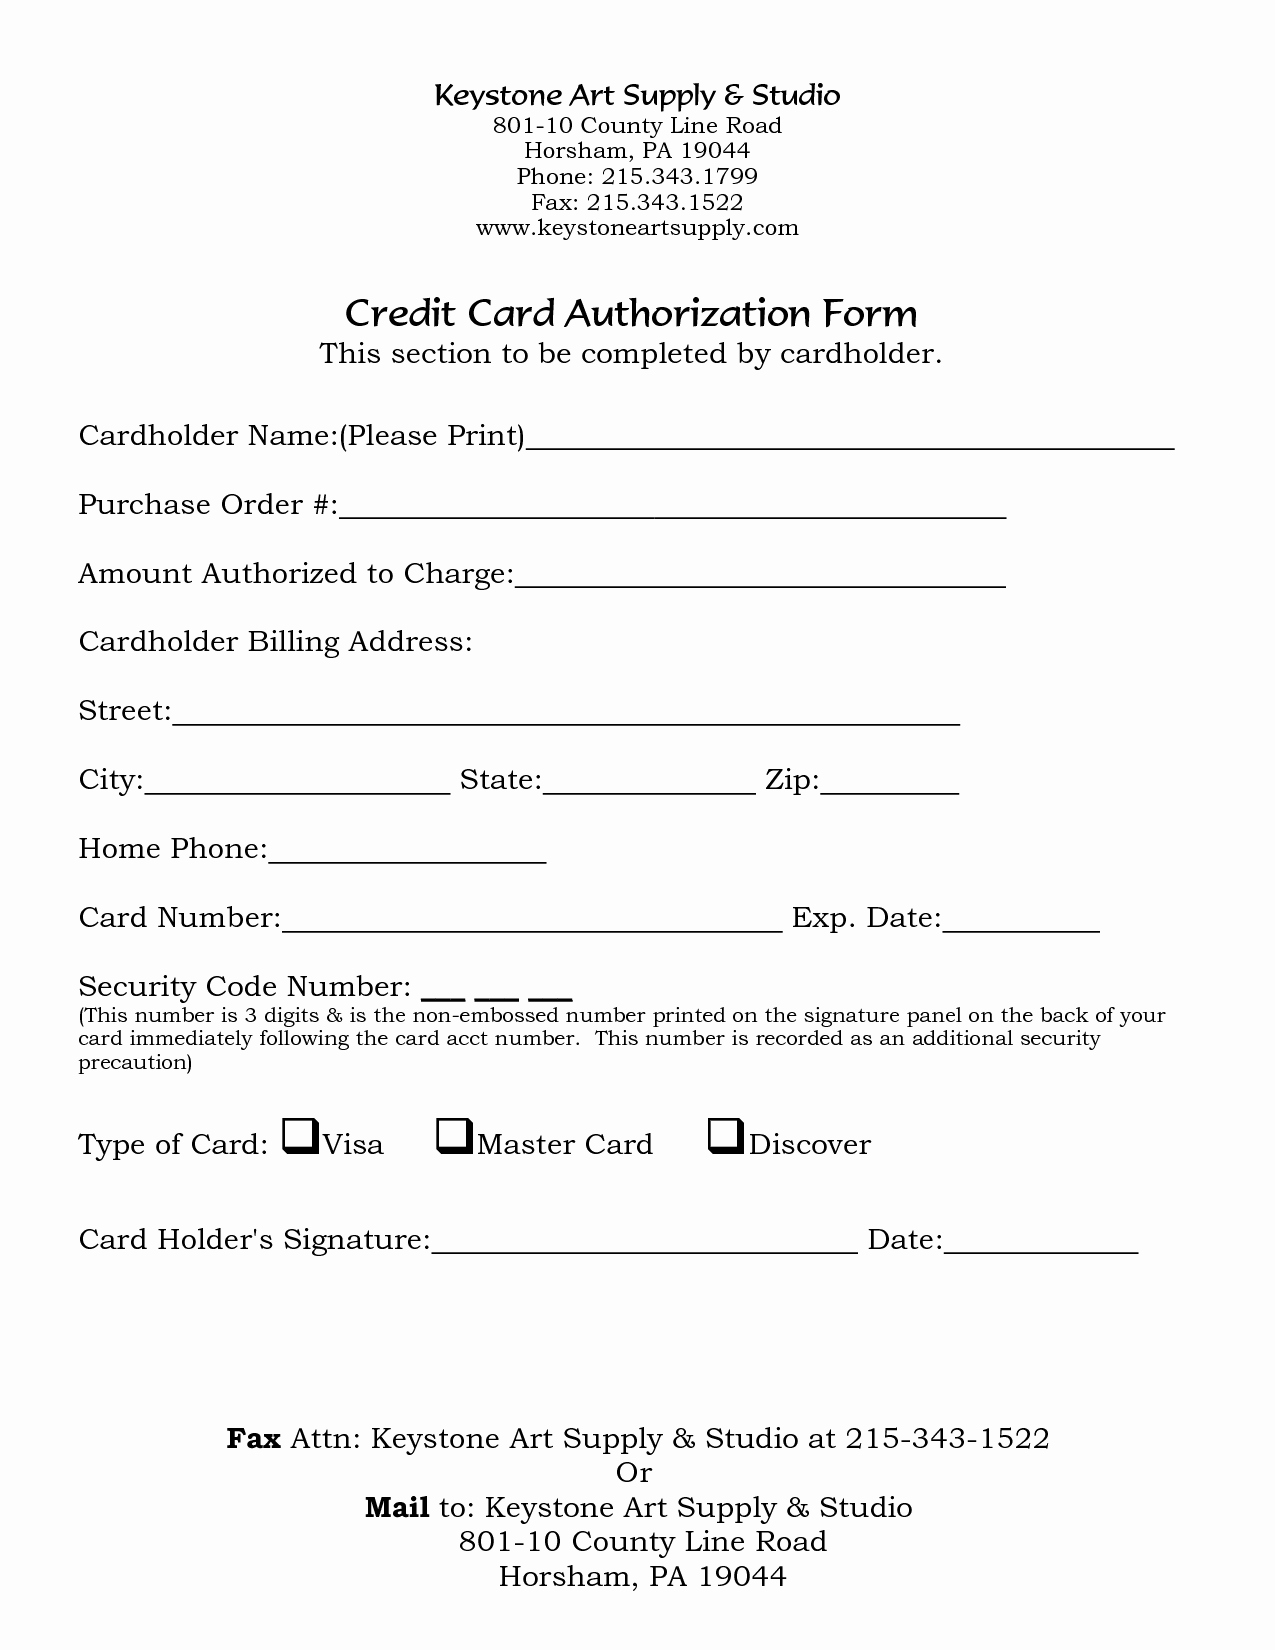 5 credit card form templates